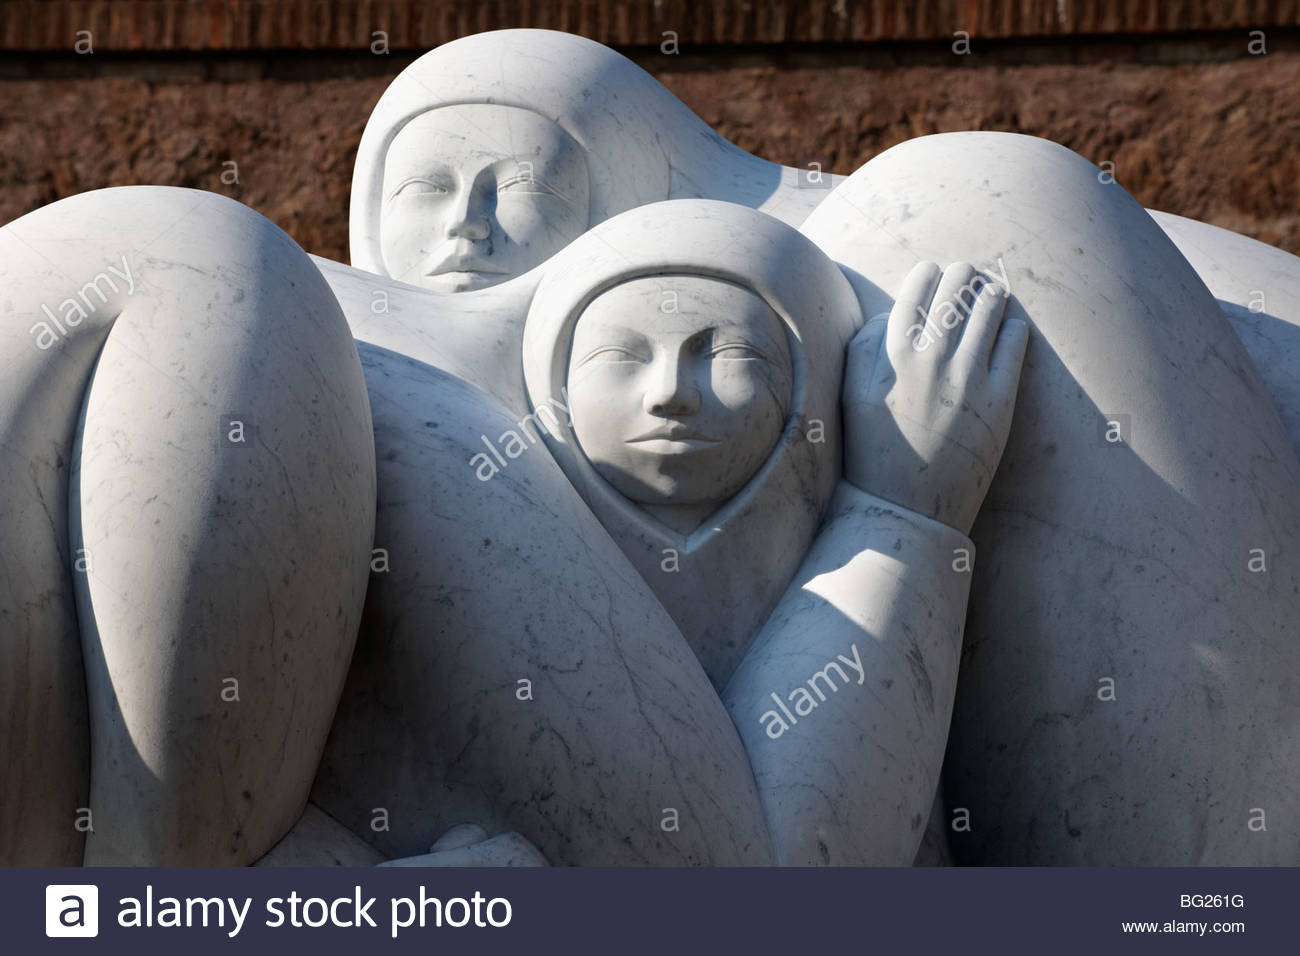 Modern sculpture by Jmenez Deredia in the Forum . Rome - Stock Image